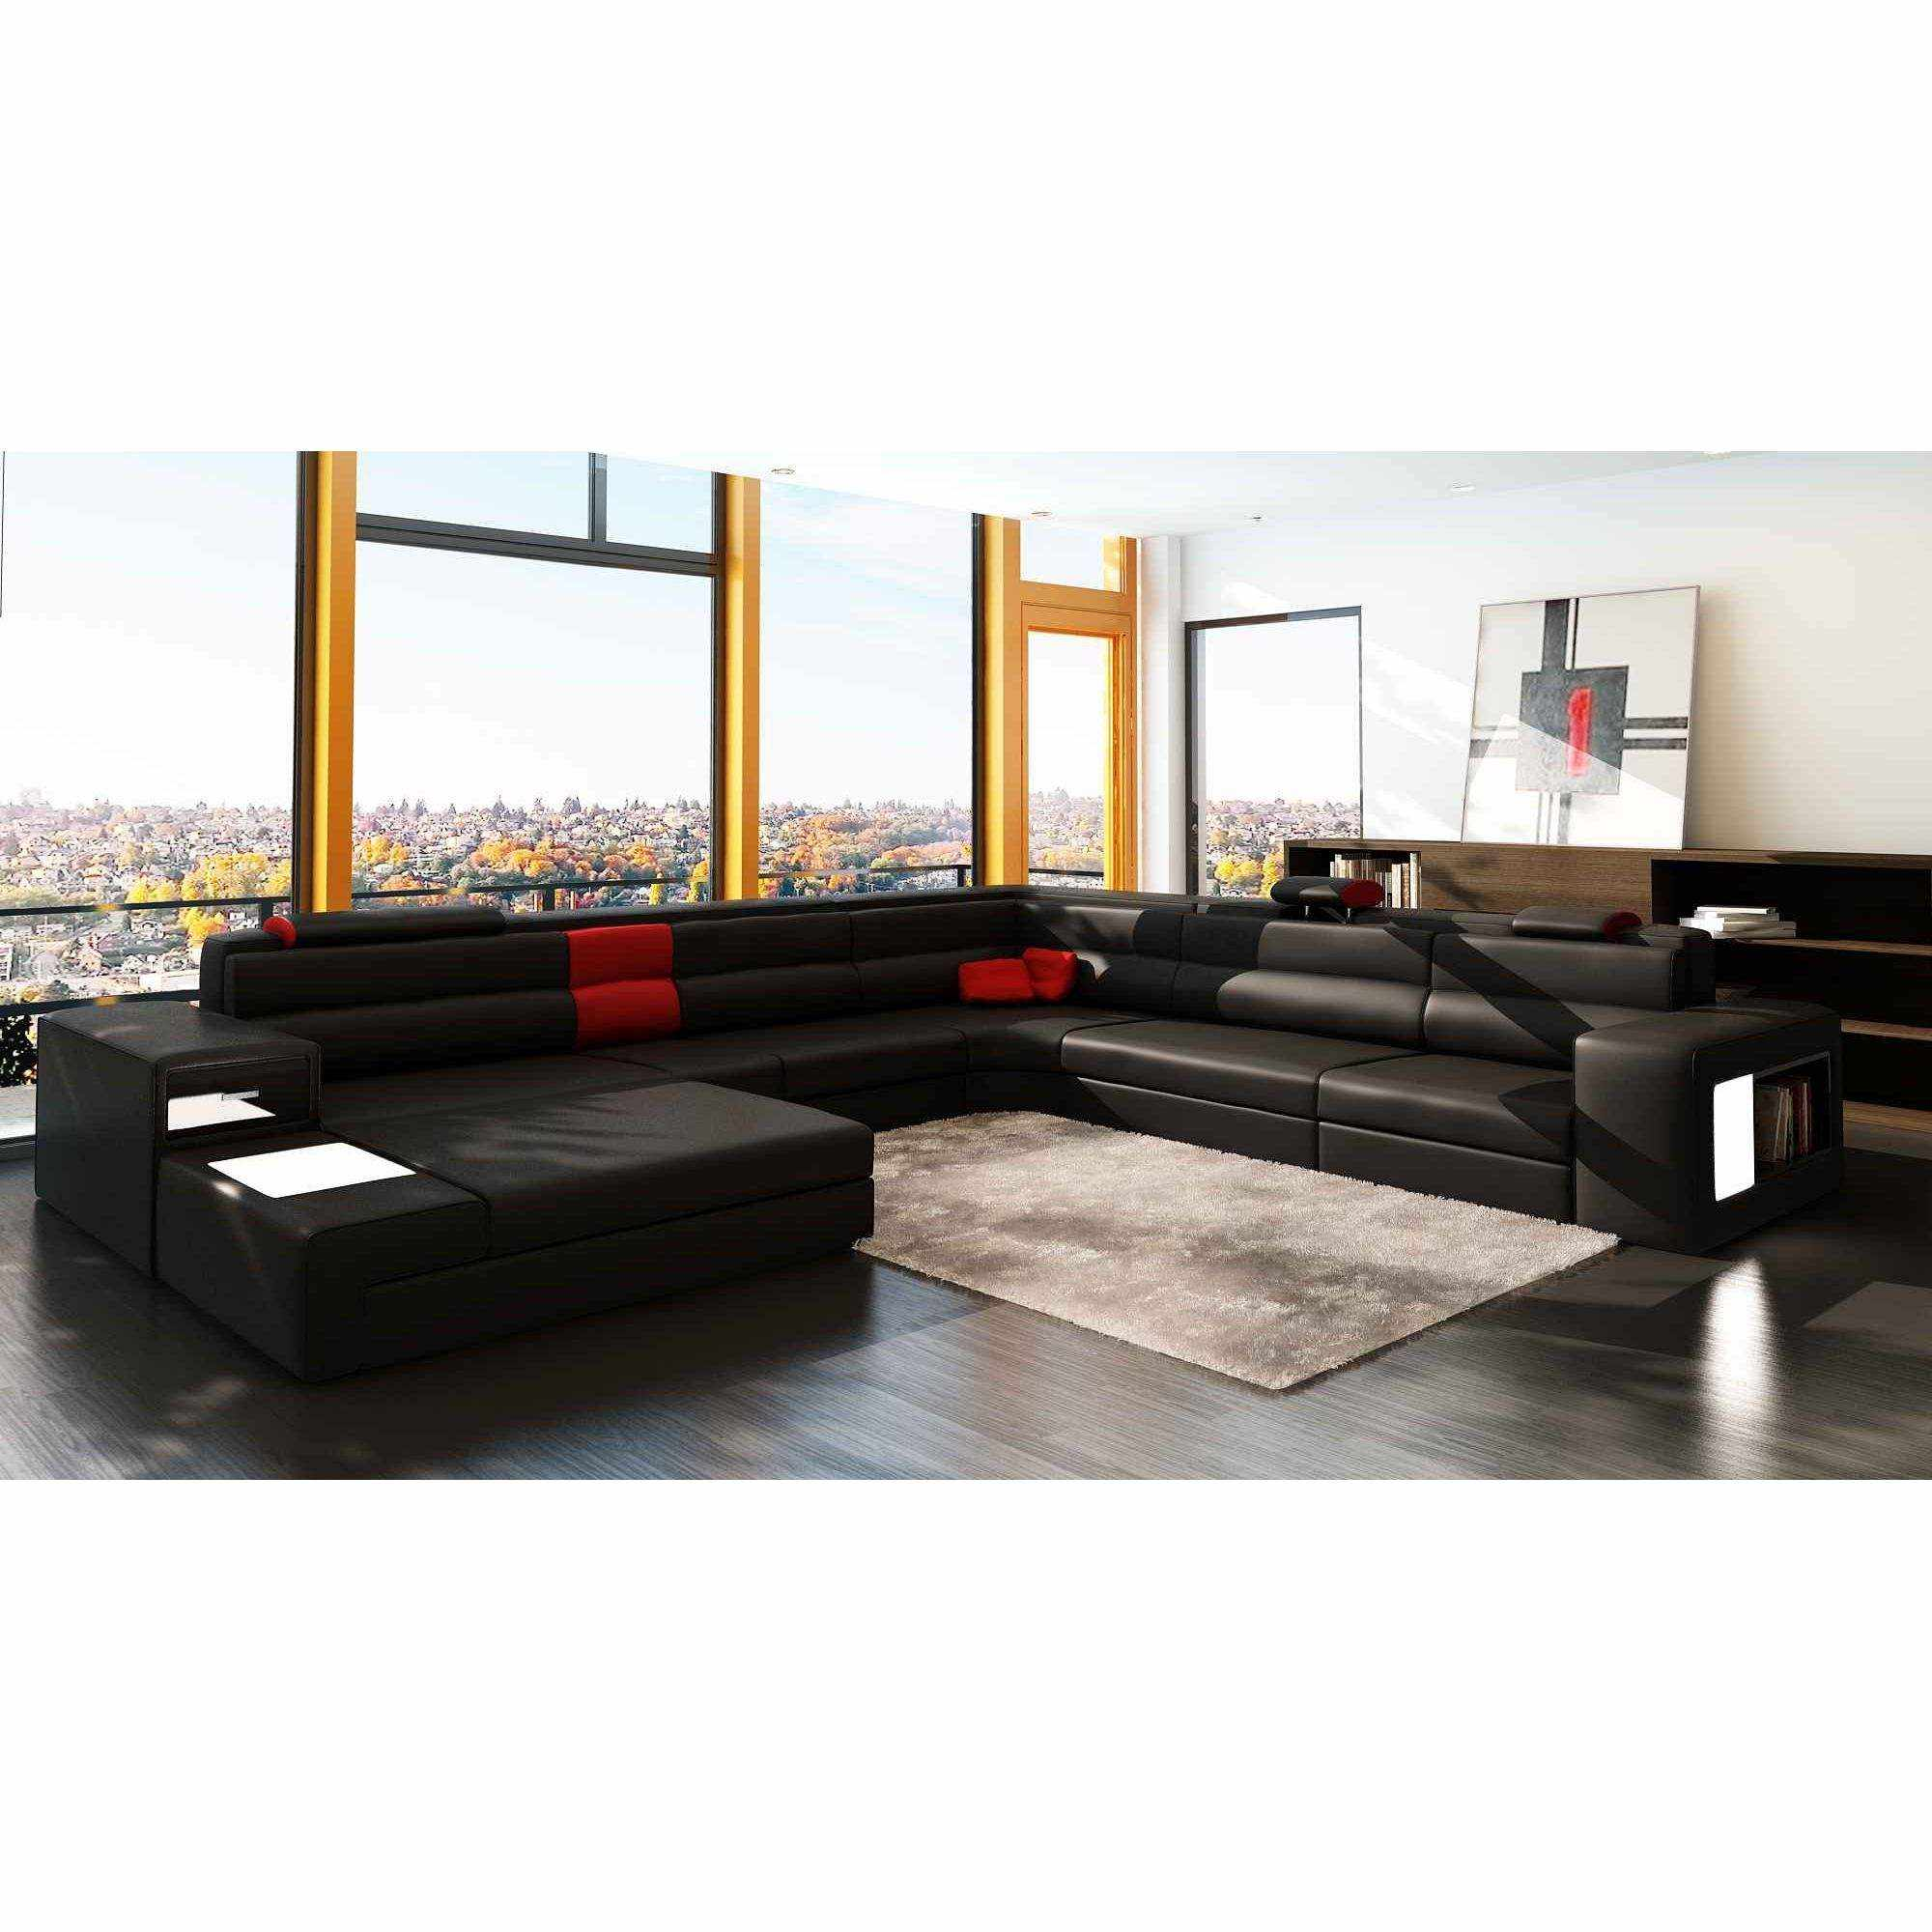 deco in paris canape panoramique cuir angle gauche noir et rouge venise can pano anglegauche. Black Bedroom Furniture Sets. Home Design Ideas